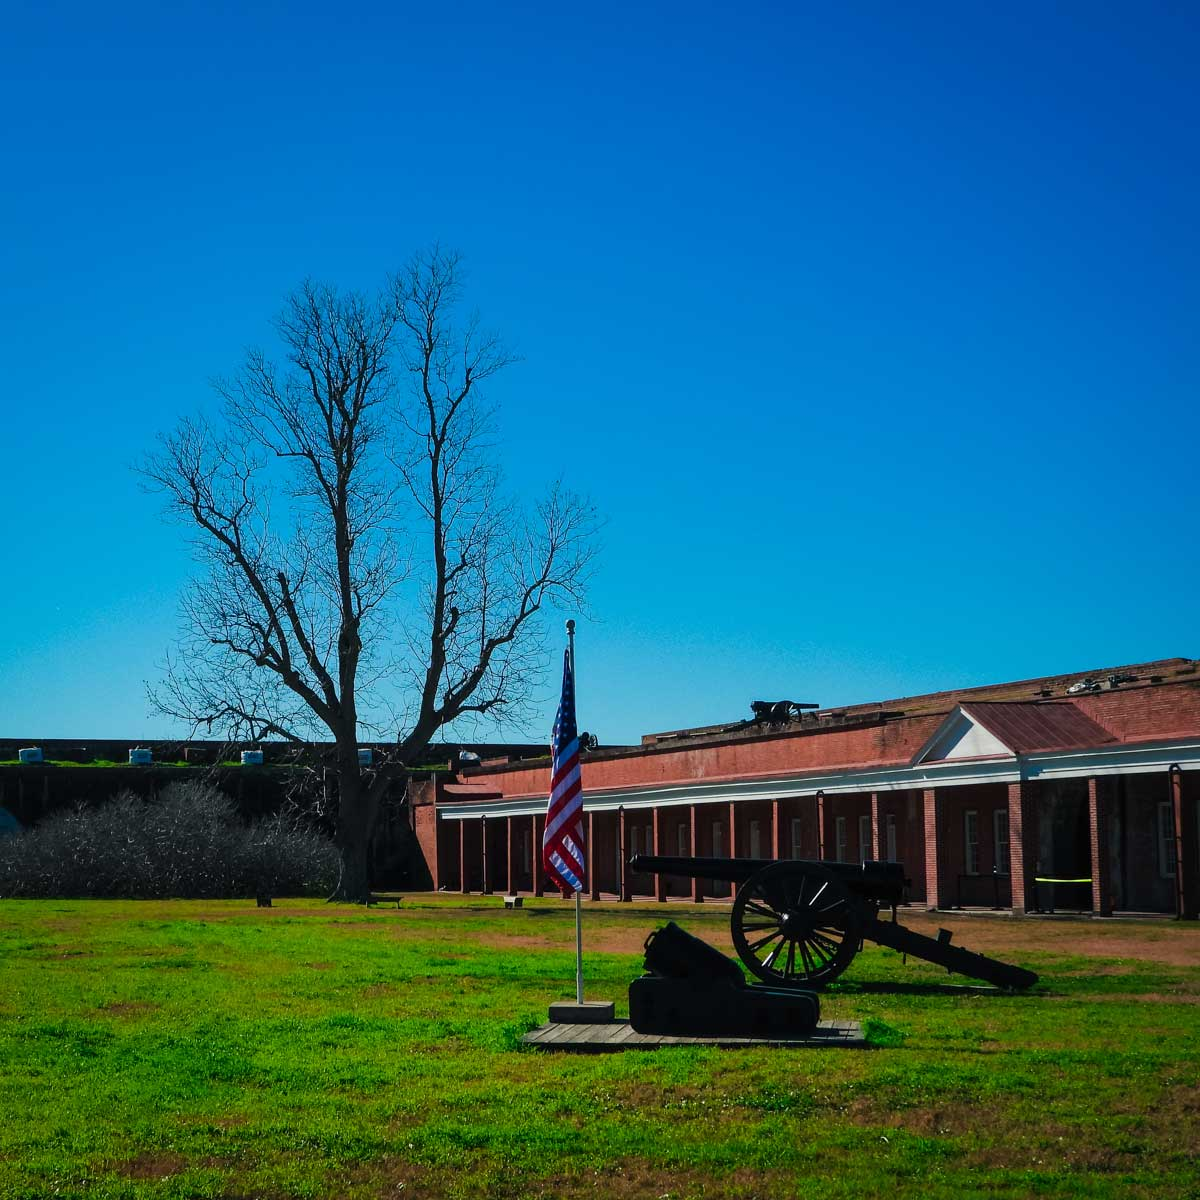 Fort Pulaski, just one of many things to do in Savannah, Georgia